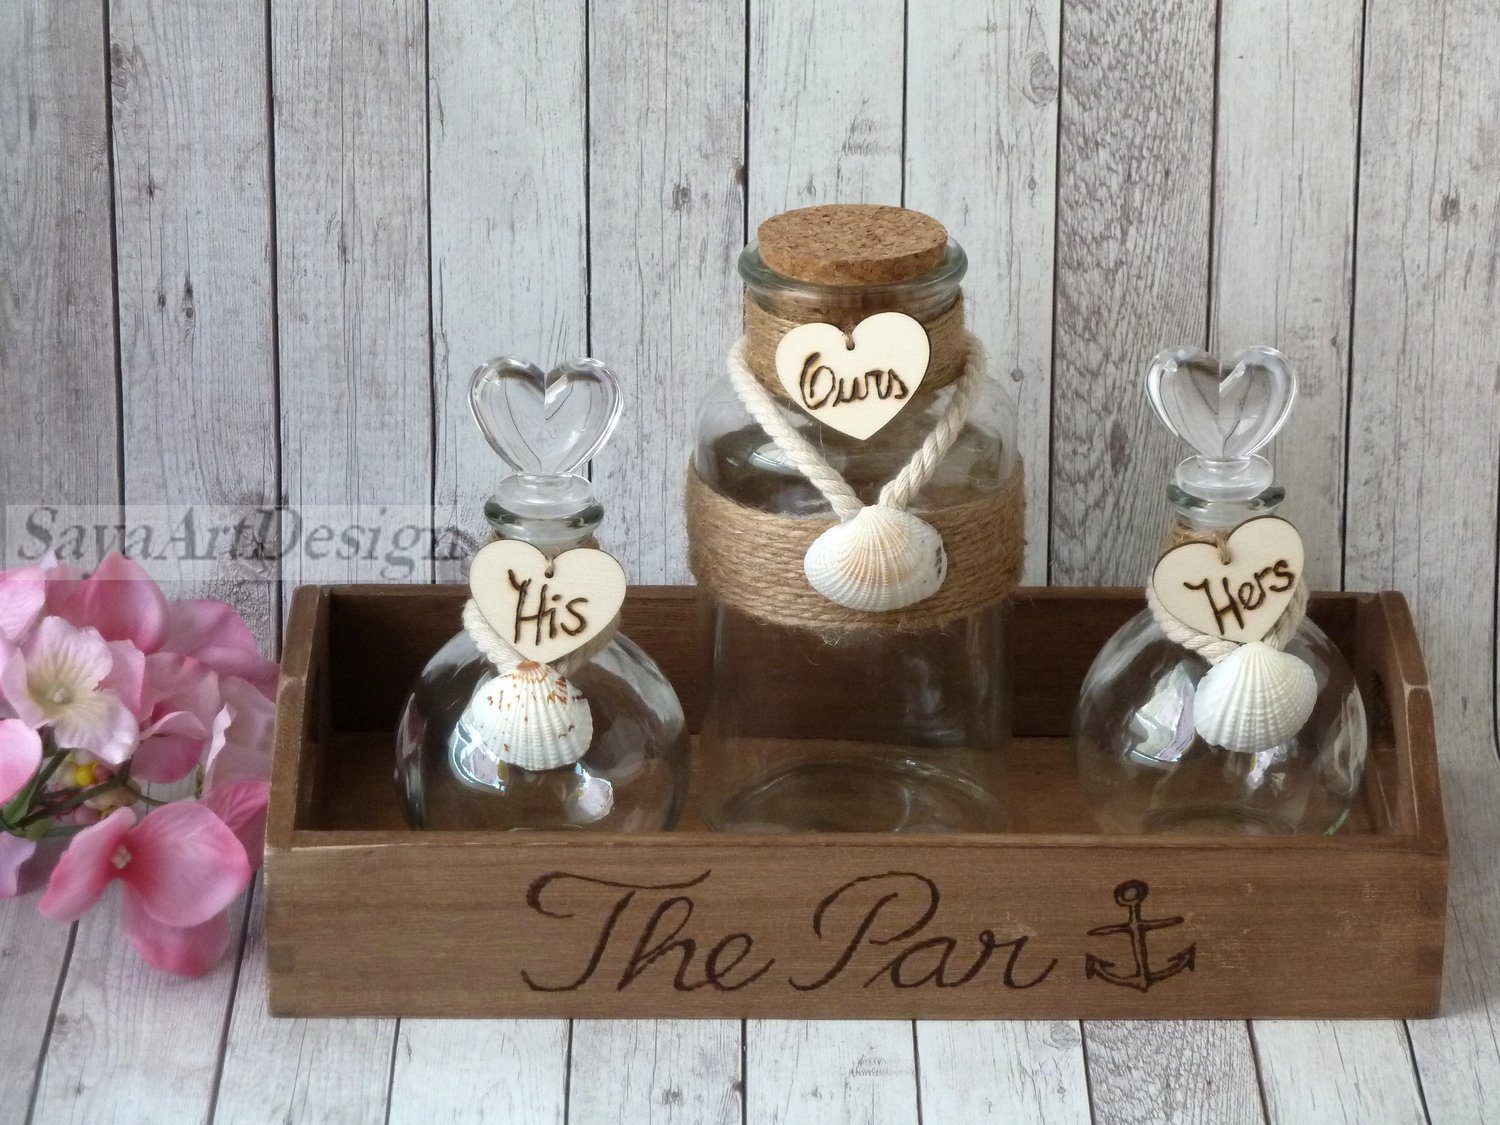 Family Unity Sand Ceremony Wedding Set for 3 Members. Beach Style, Engraved. Personalized